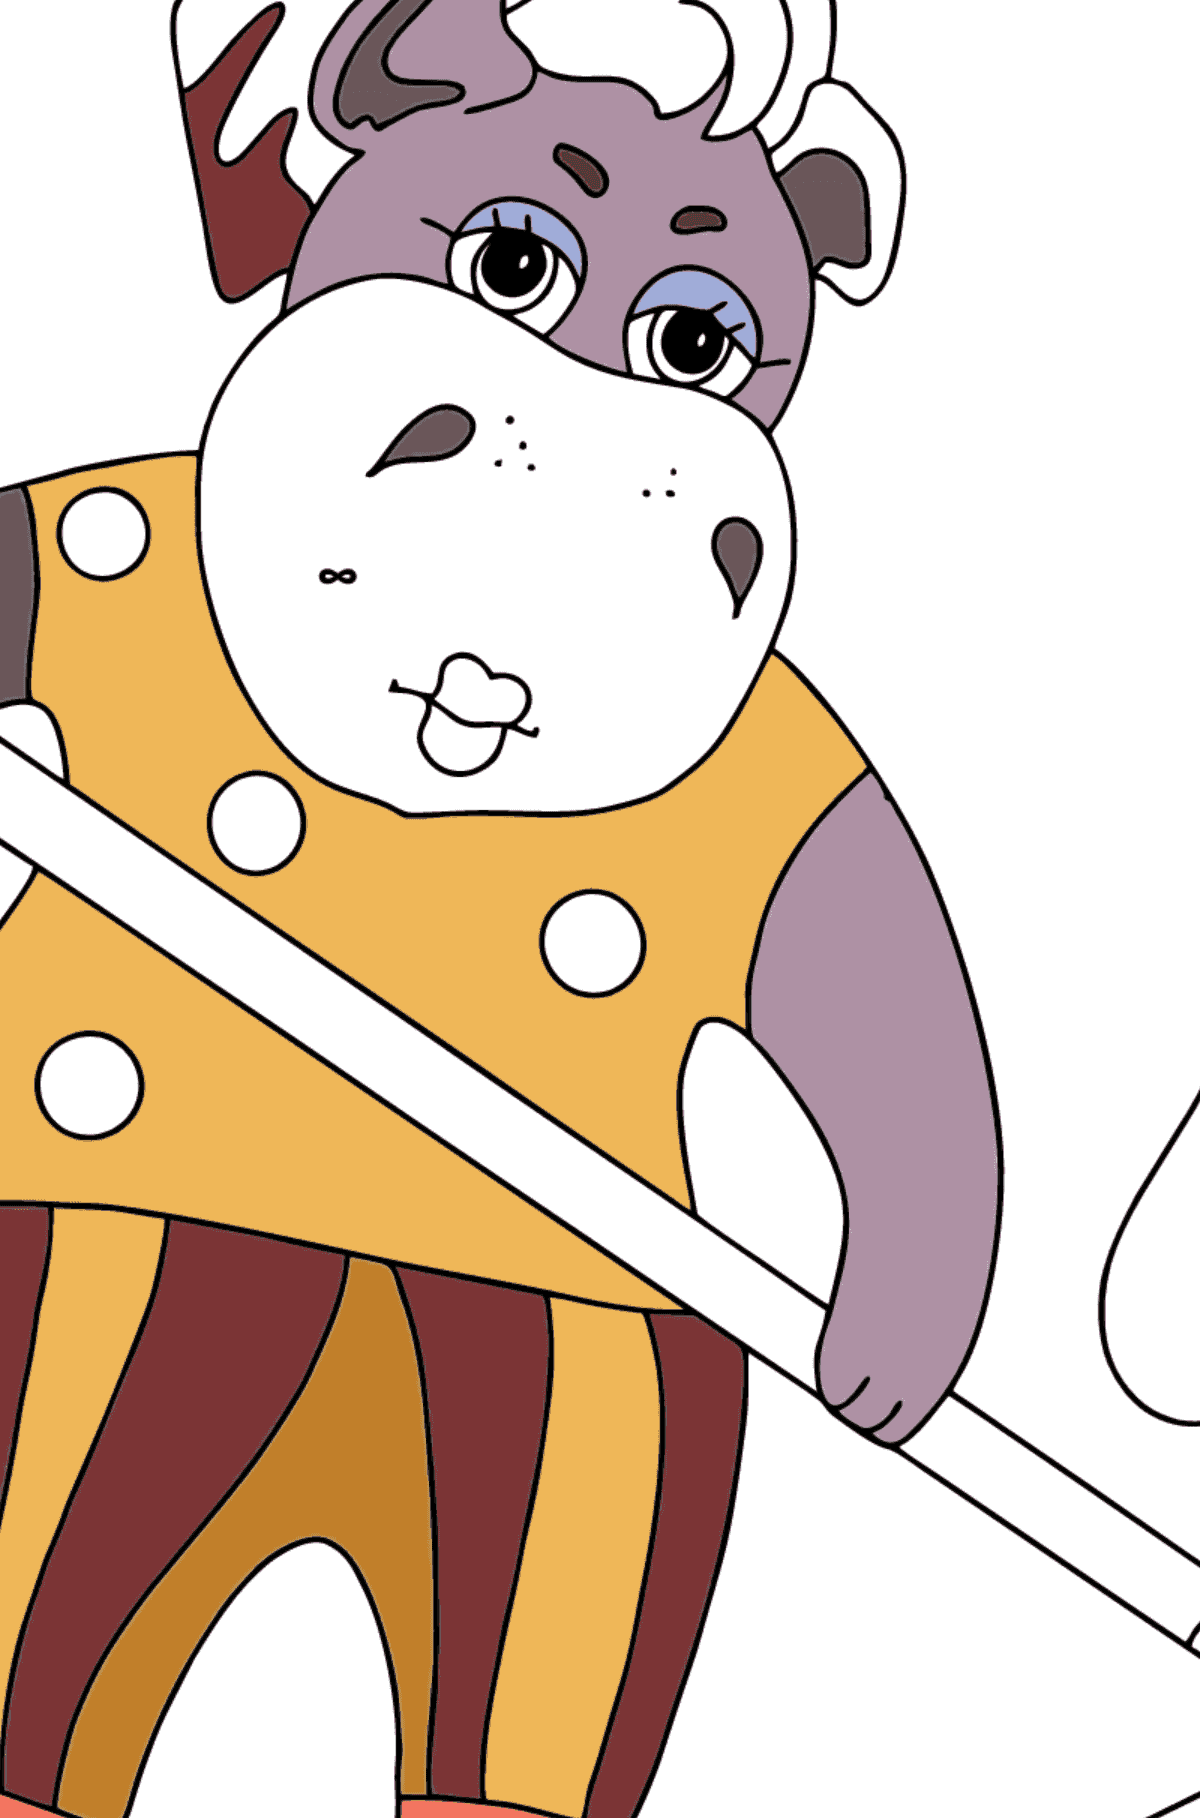 Coloring Page - A Hippo is Collecting Fallen Leaves for Children  - Color by Special Symbols